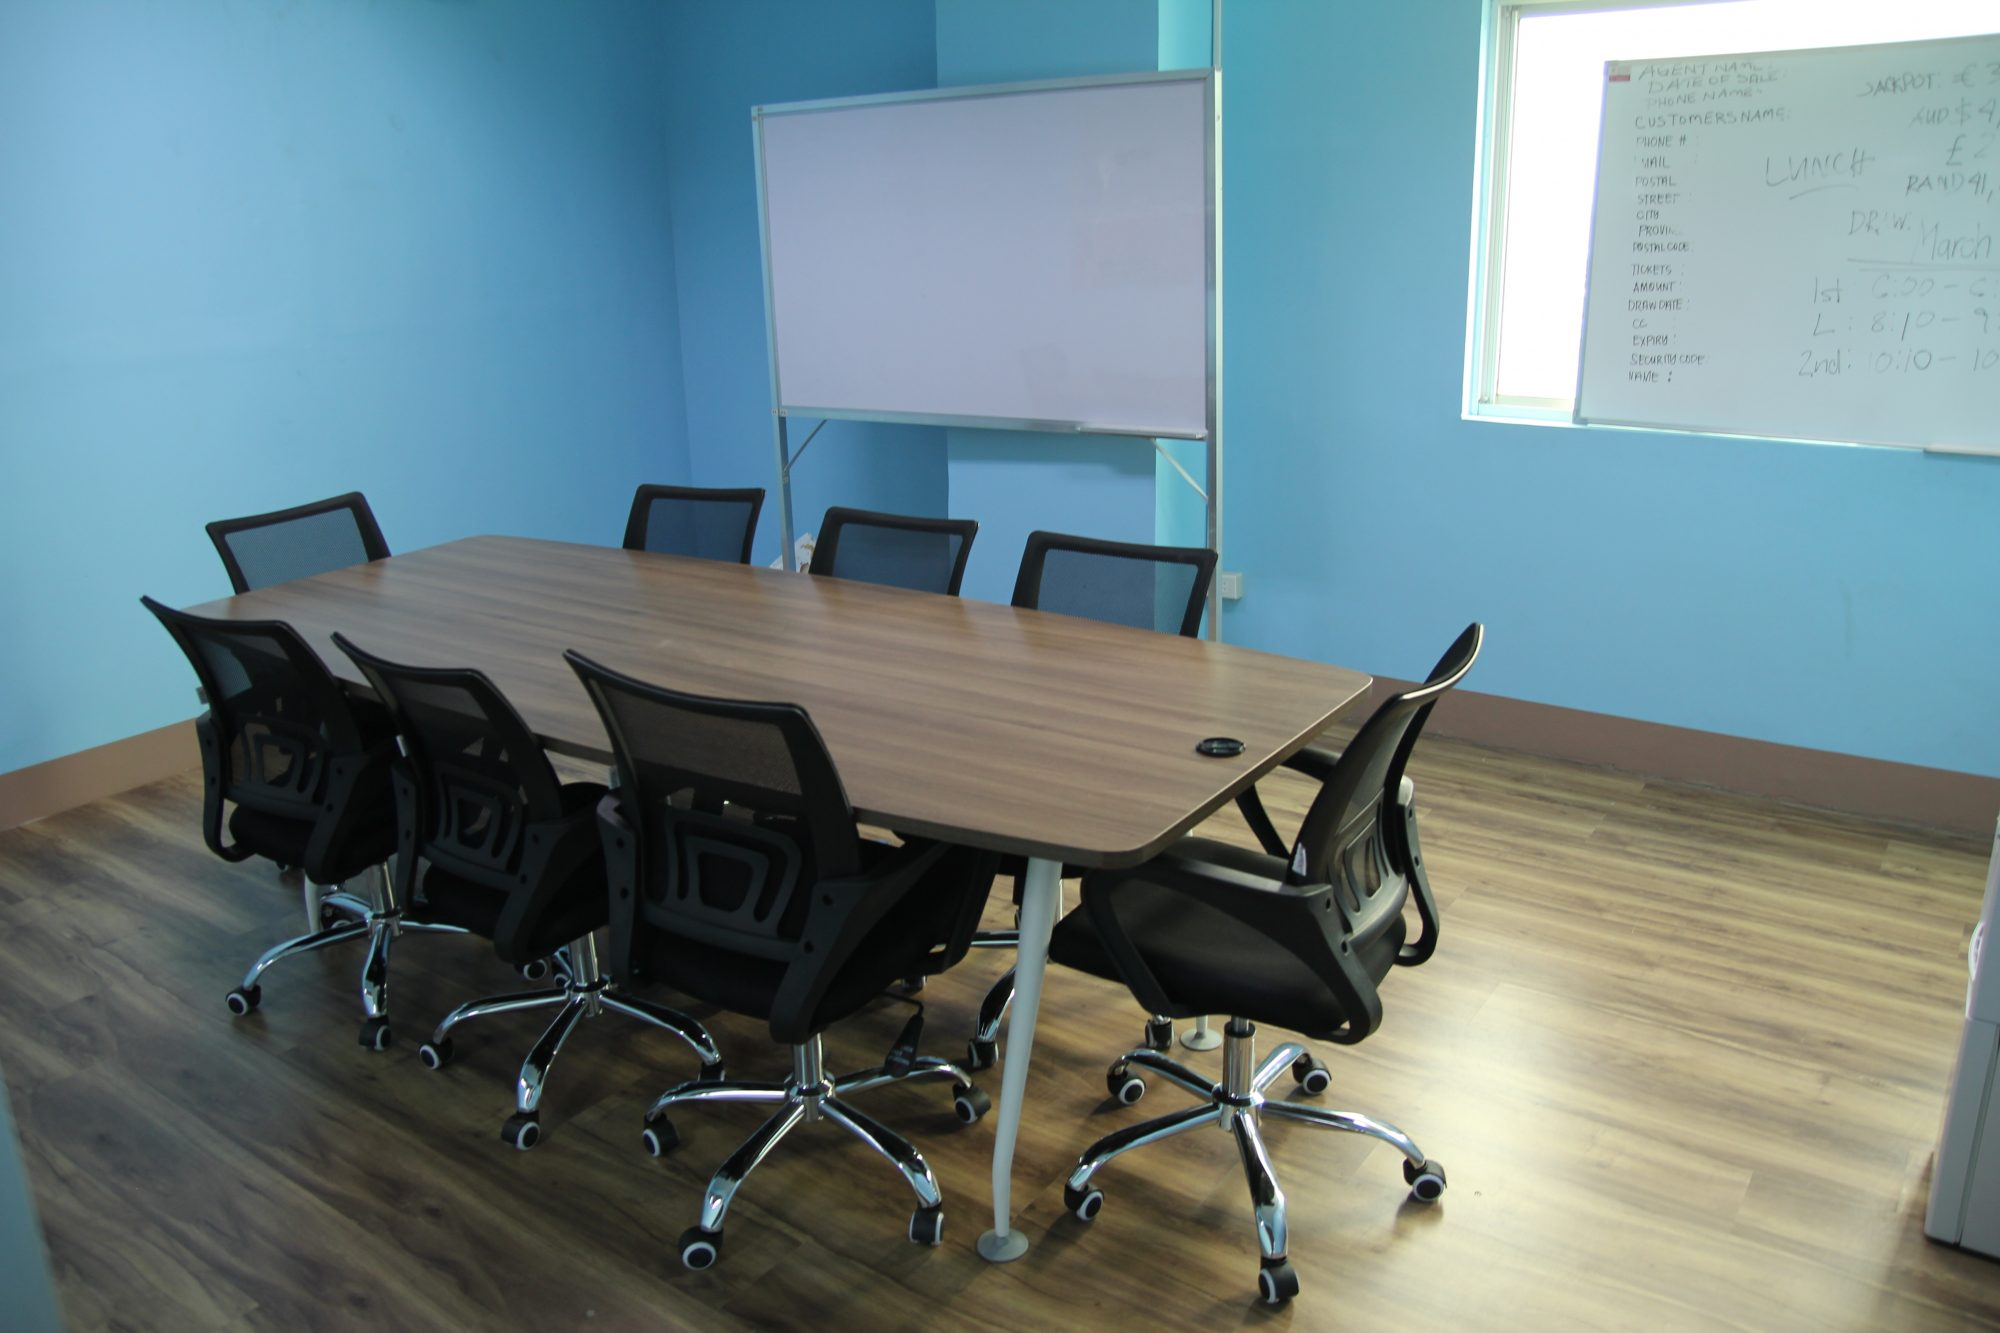 Seat Leasing with Customized office space at BPOseats.com